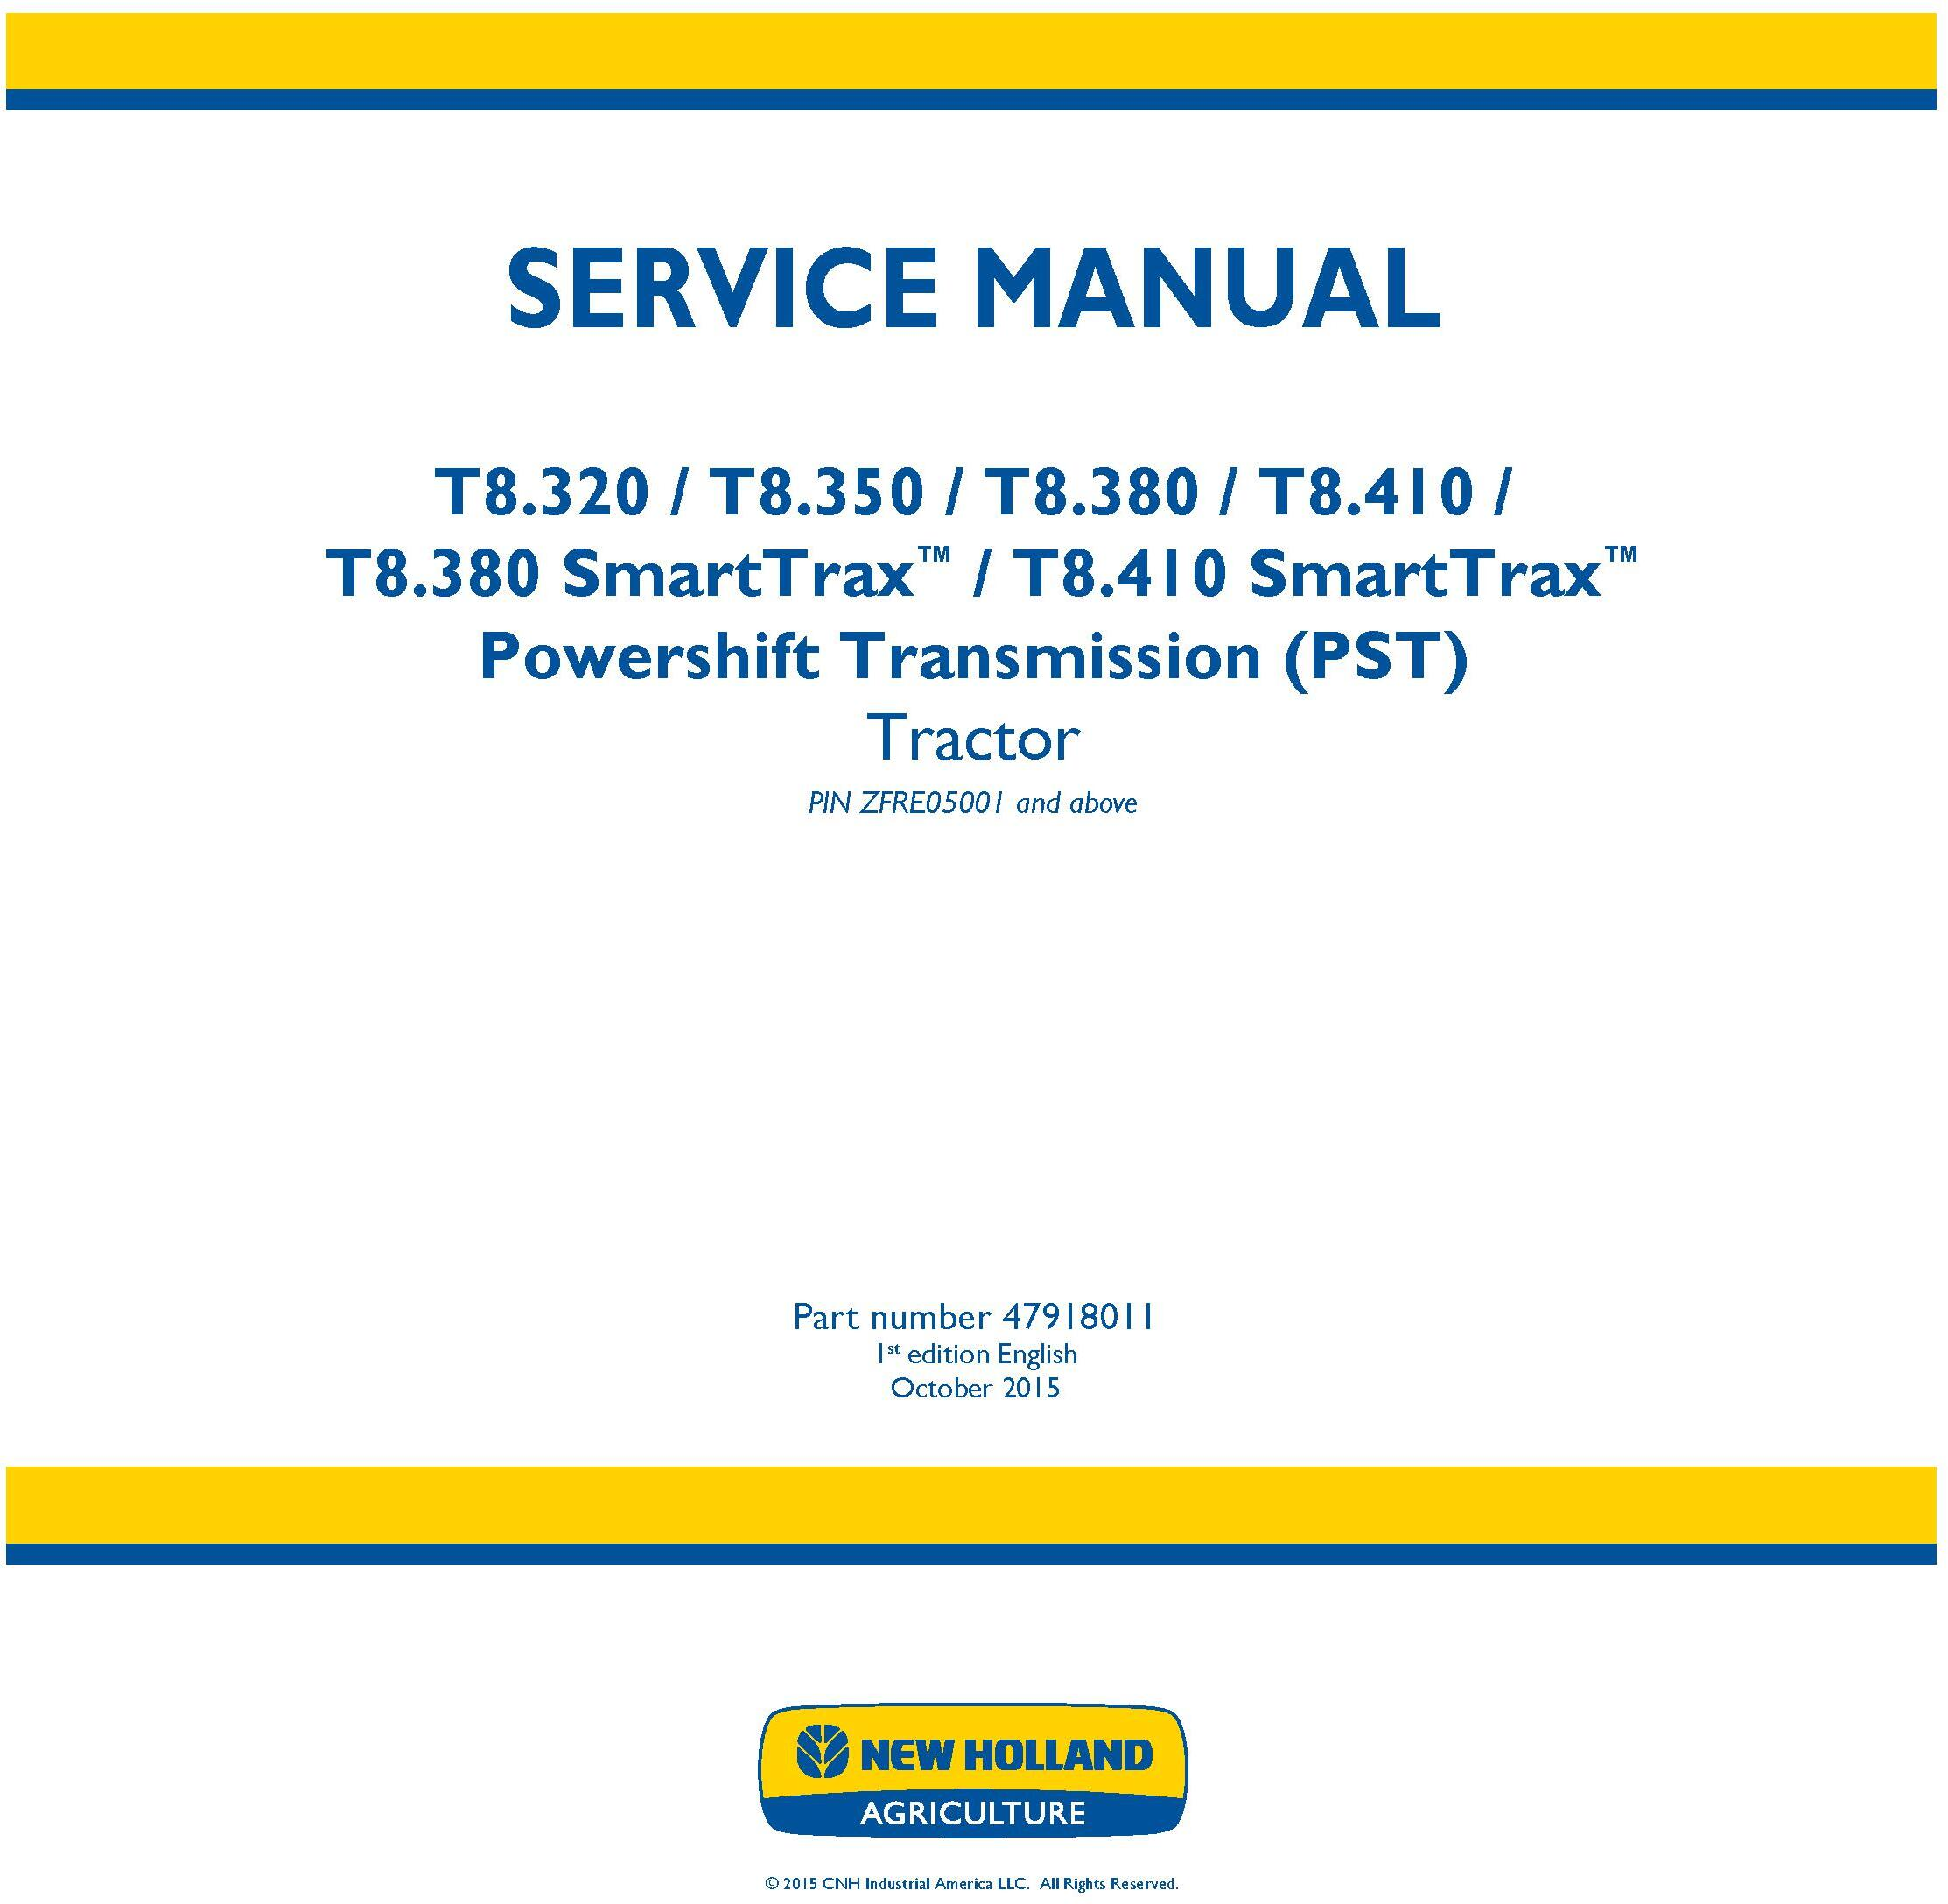 New Holland T8.320, T8.350, T8.380, T8.410 and SmartTrax Tier 2 Tractor with PST Service Manual - 19458